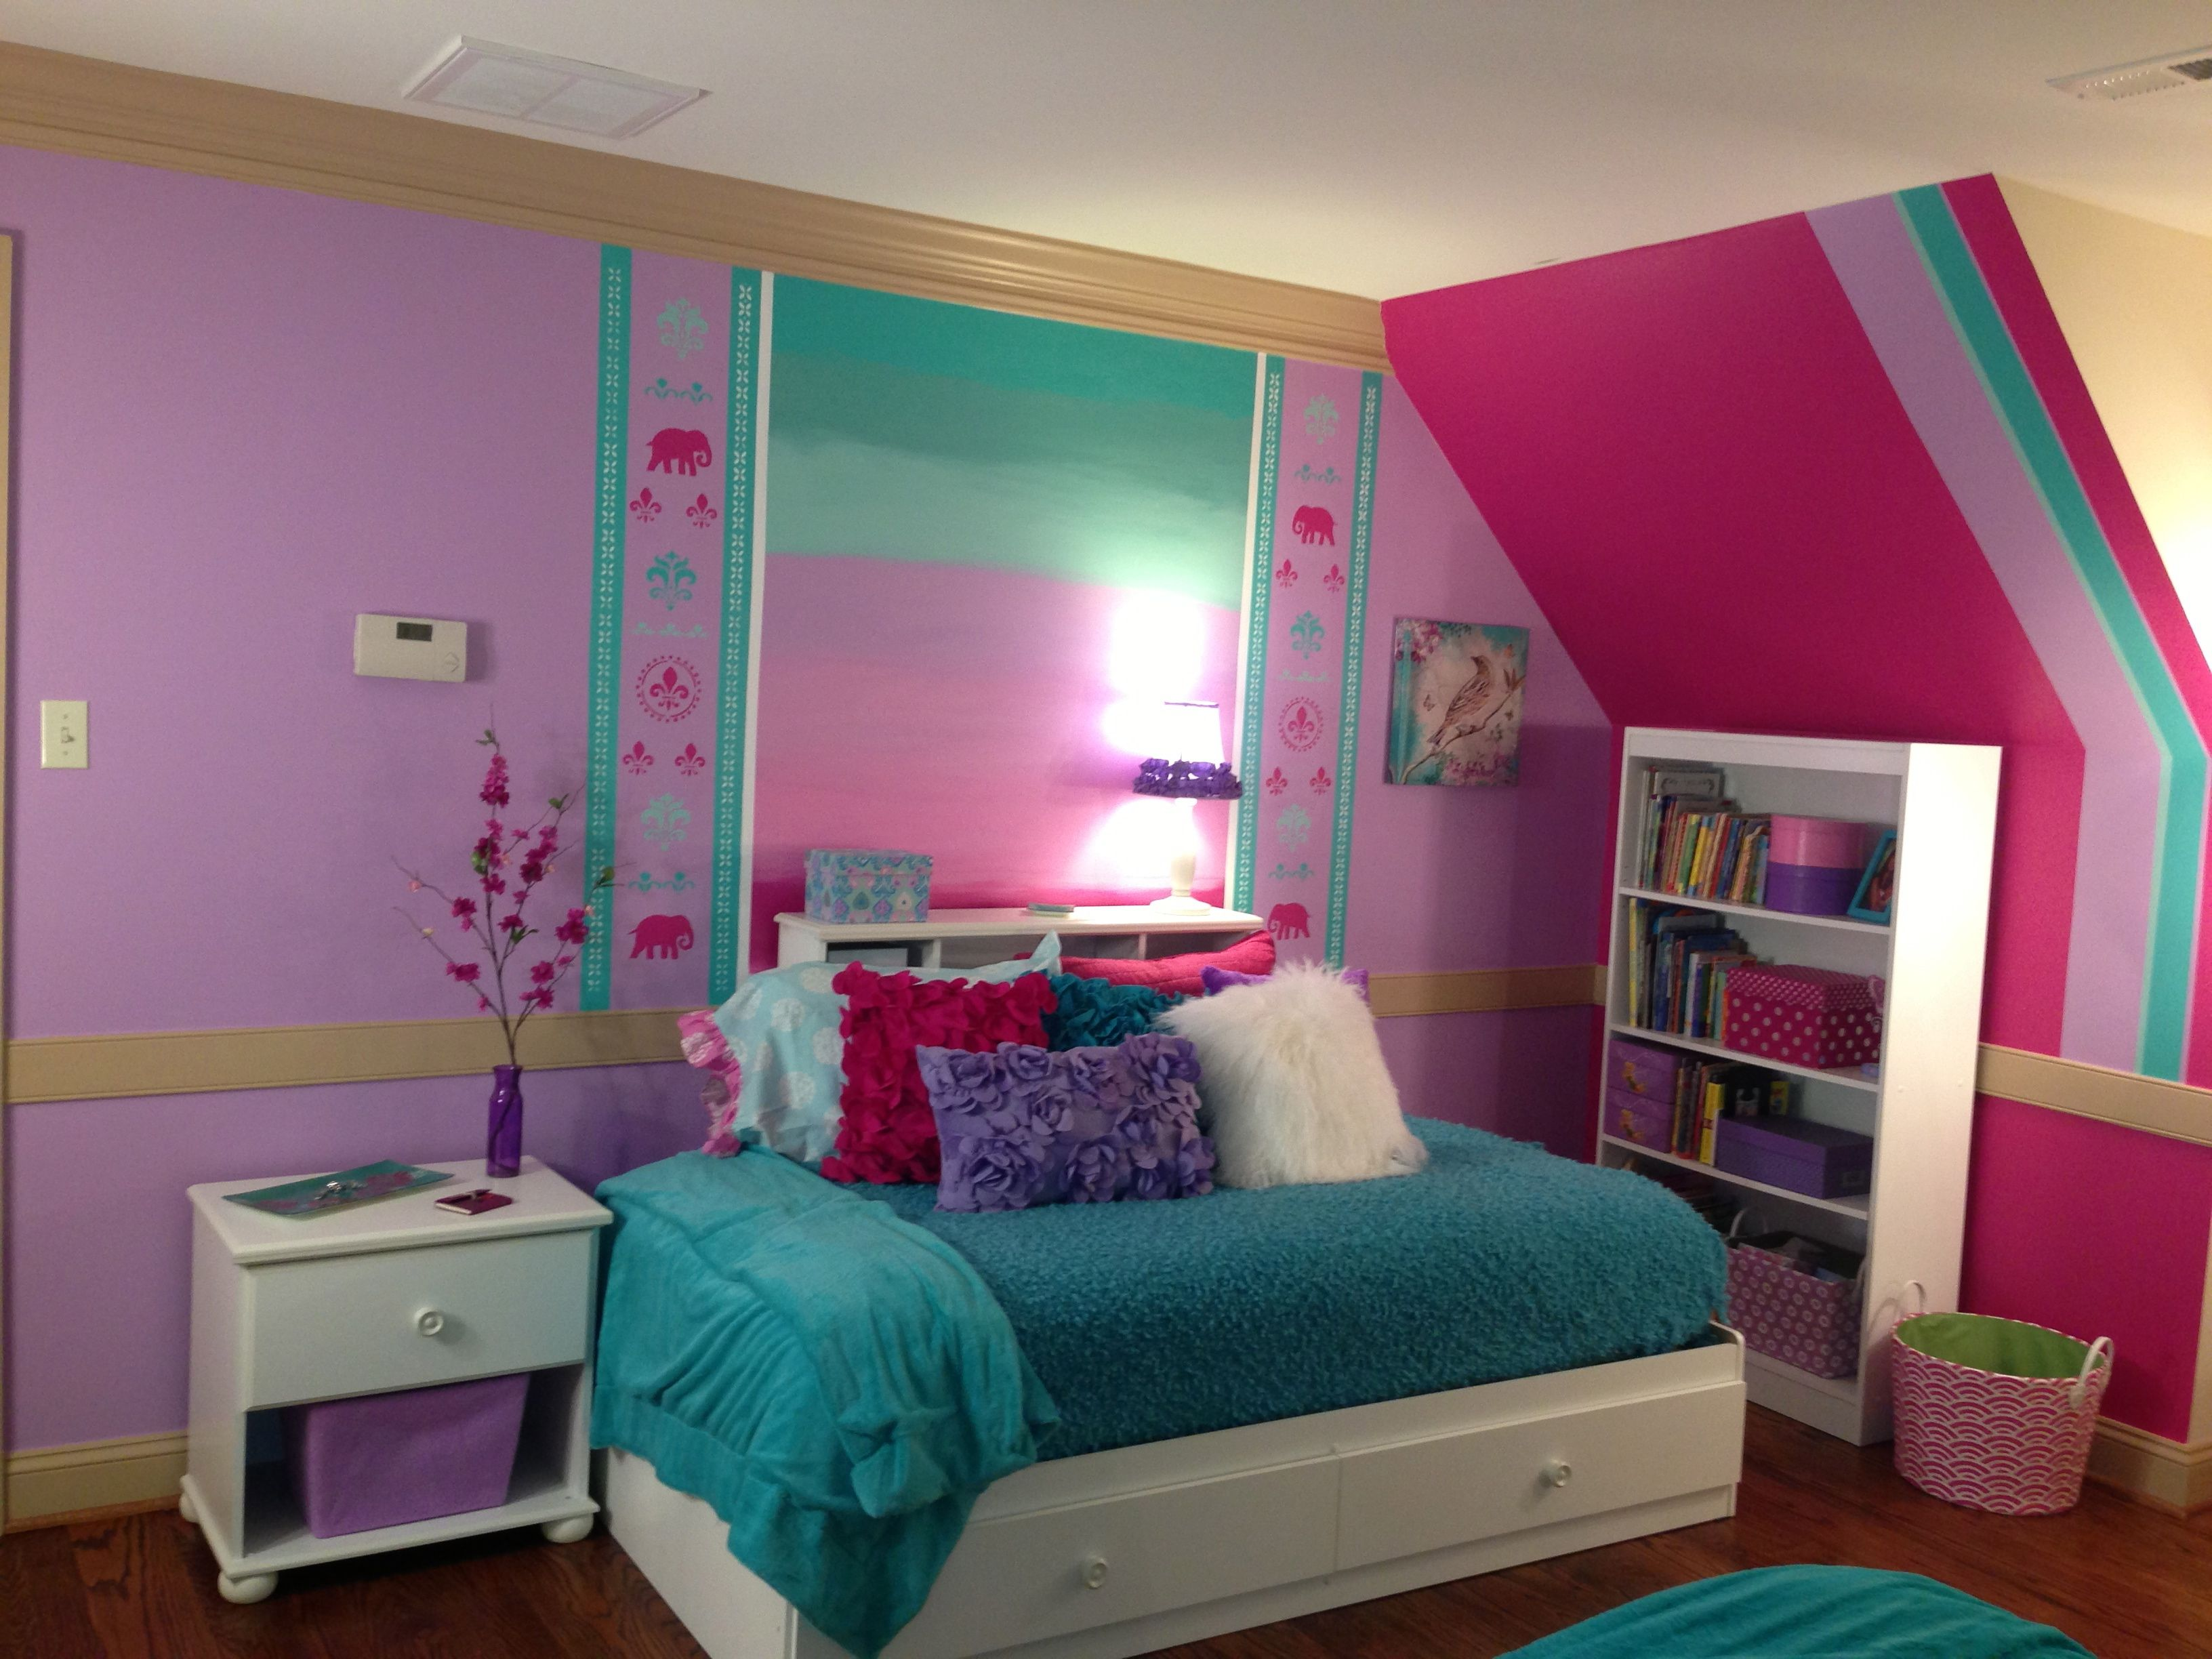 Making the most of space with a twin bed 7 year old for 4 yr old bedroom ideas